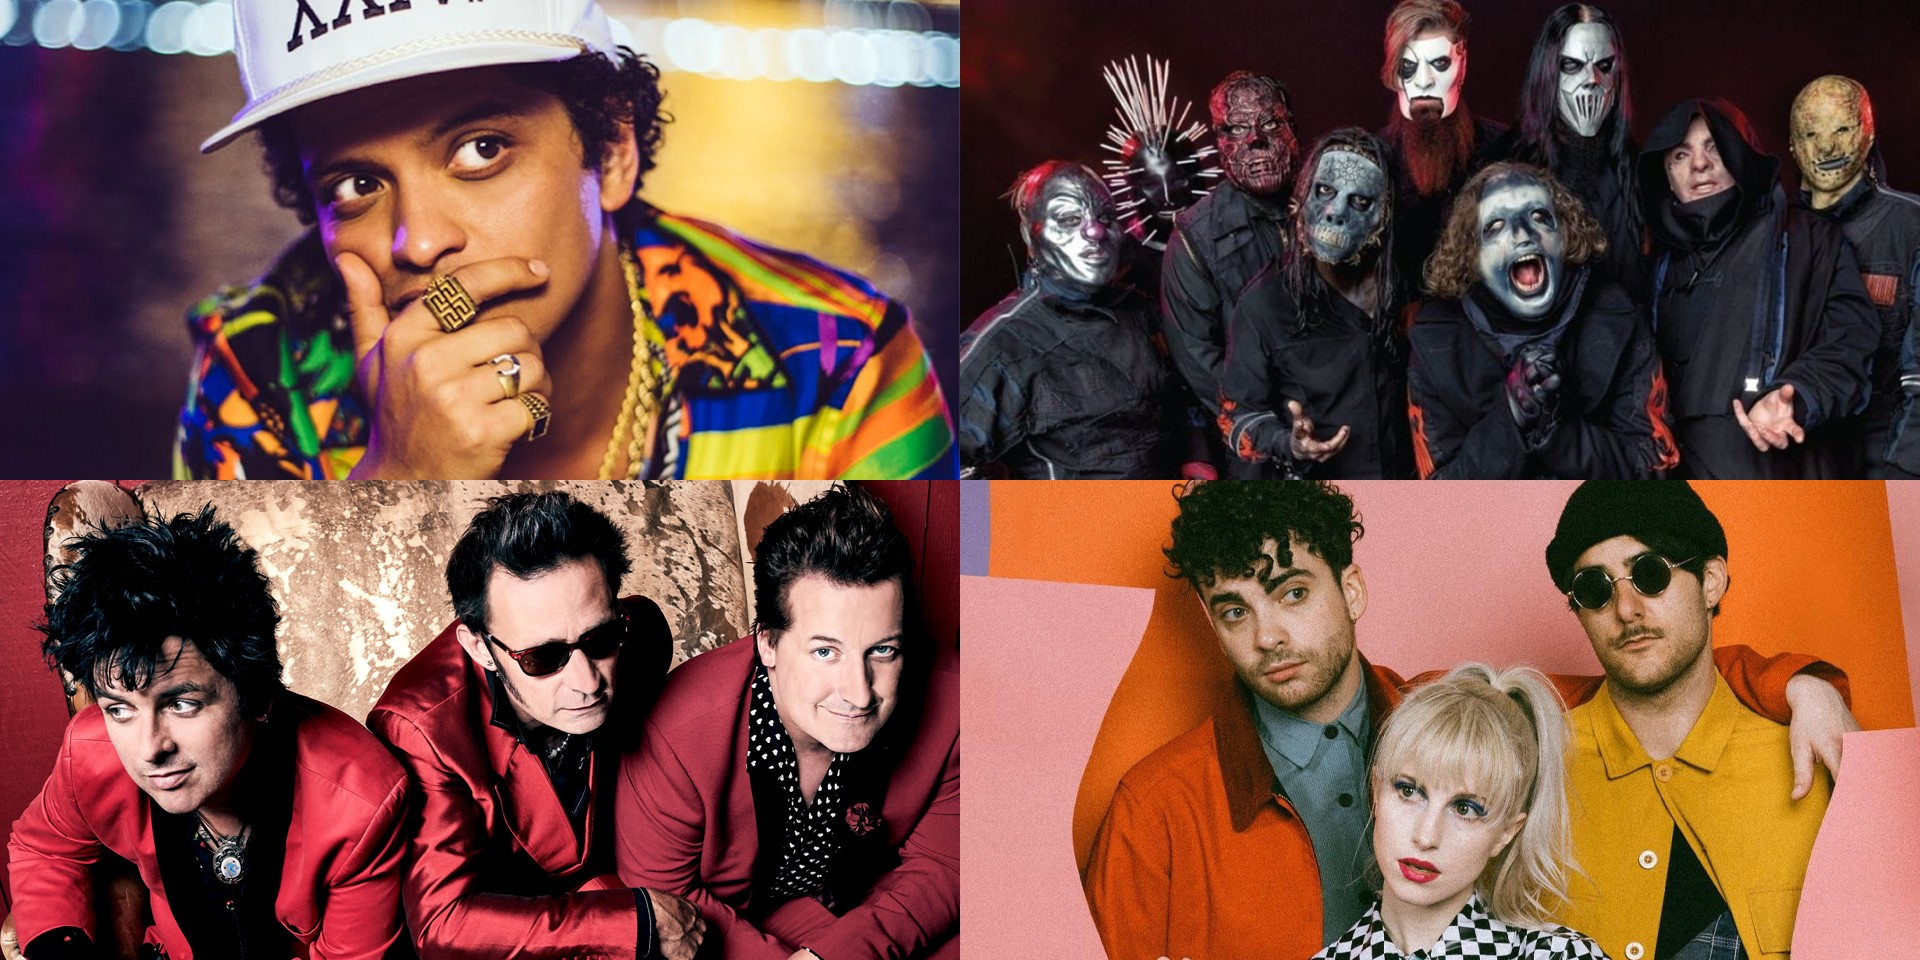 Live sets by Bruno Mars, Slipknot, Green Day, Paramore, and more to stream on PlayOn Fest digital music festival